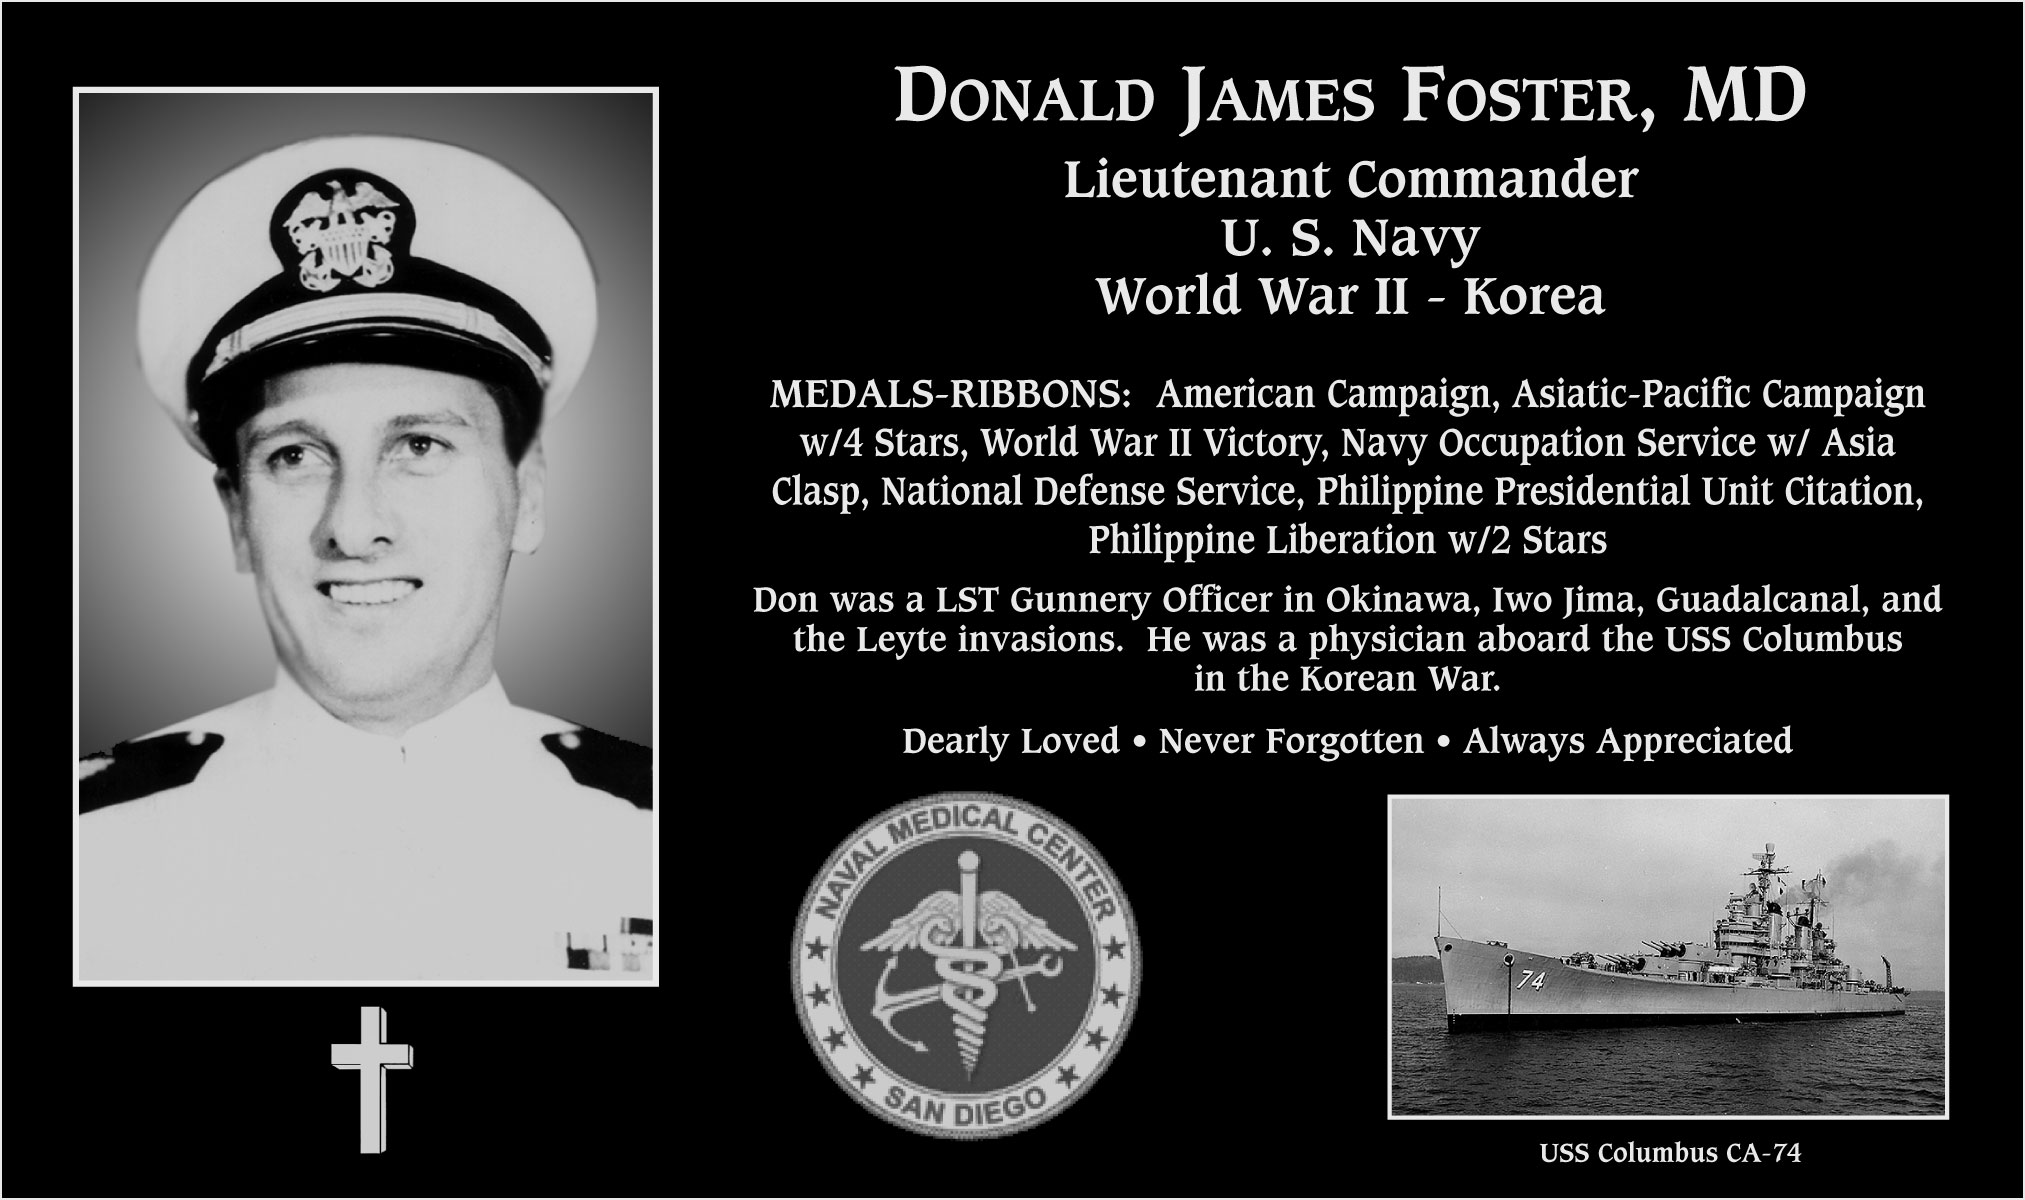 Donald James Foster, M.D.